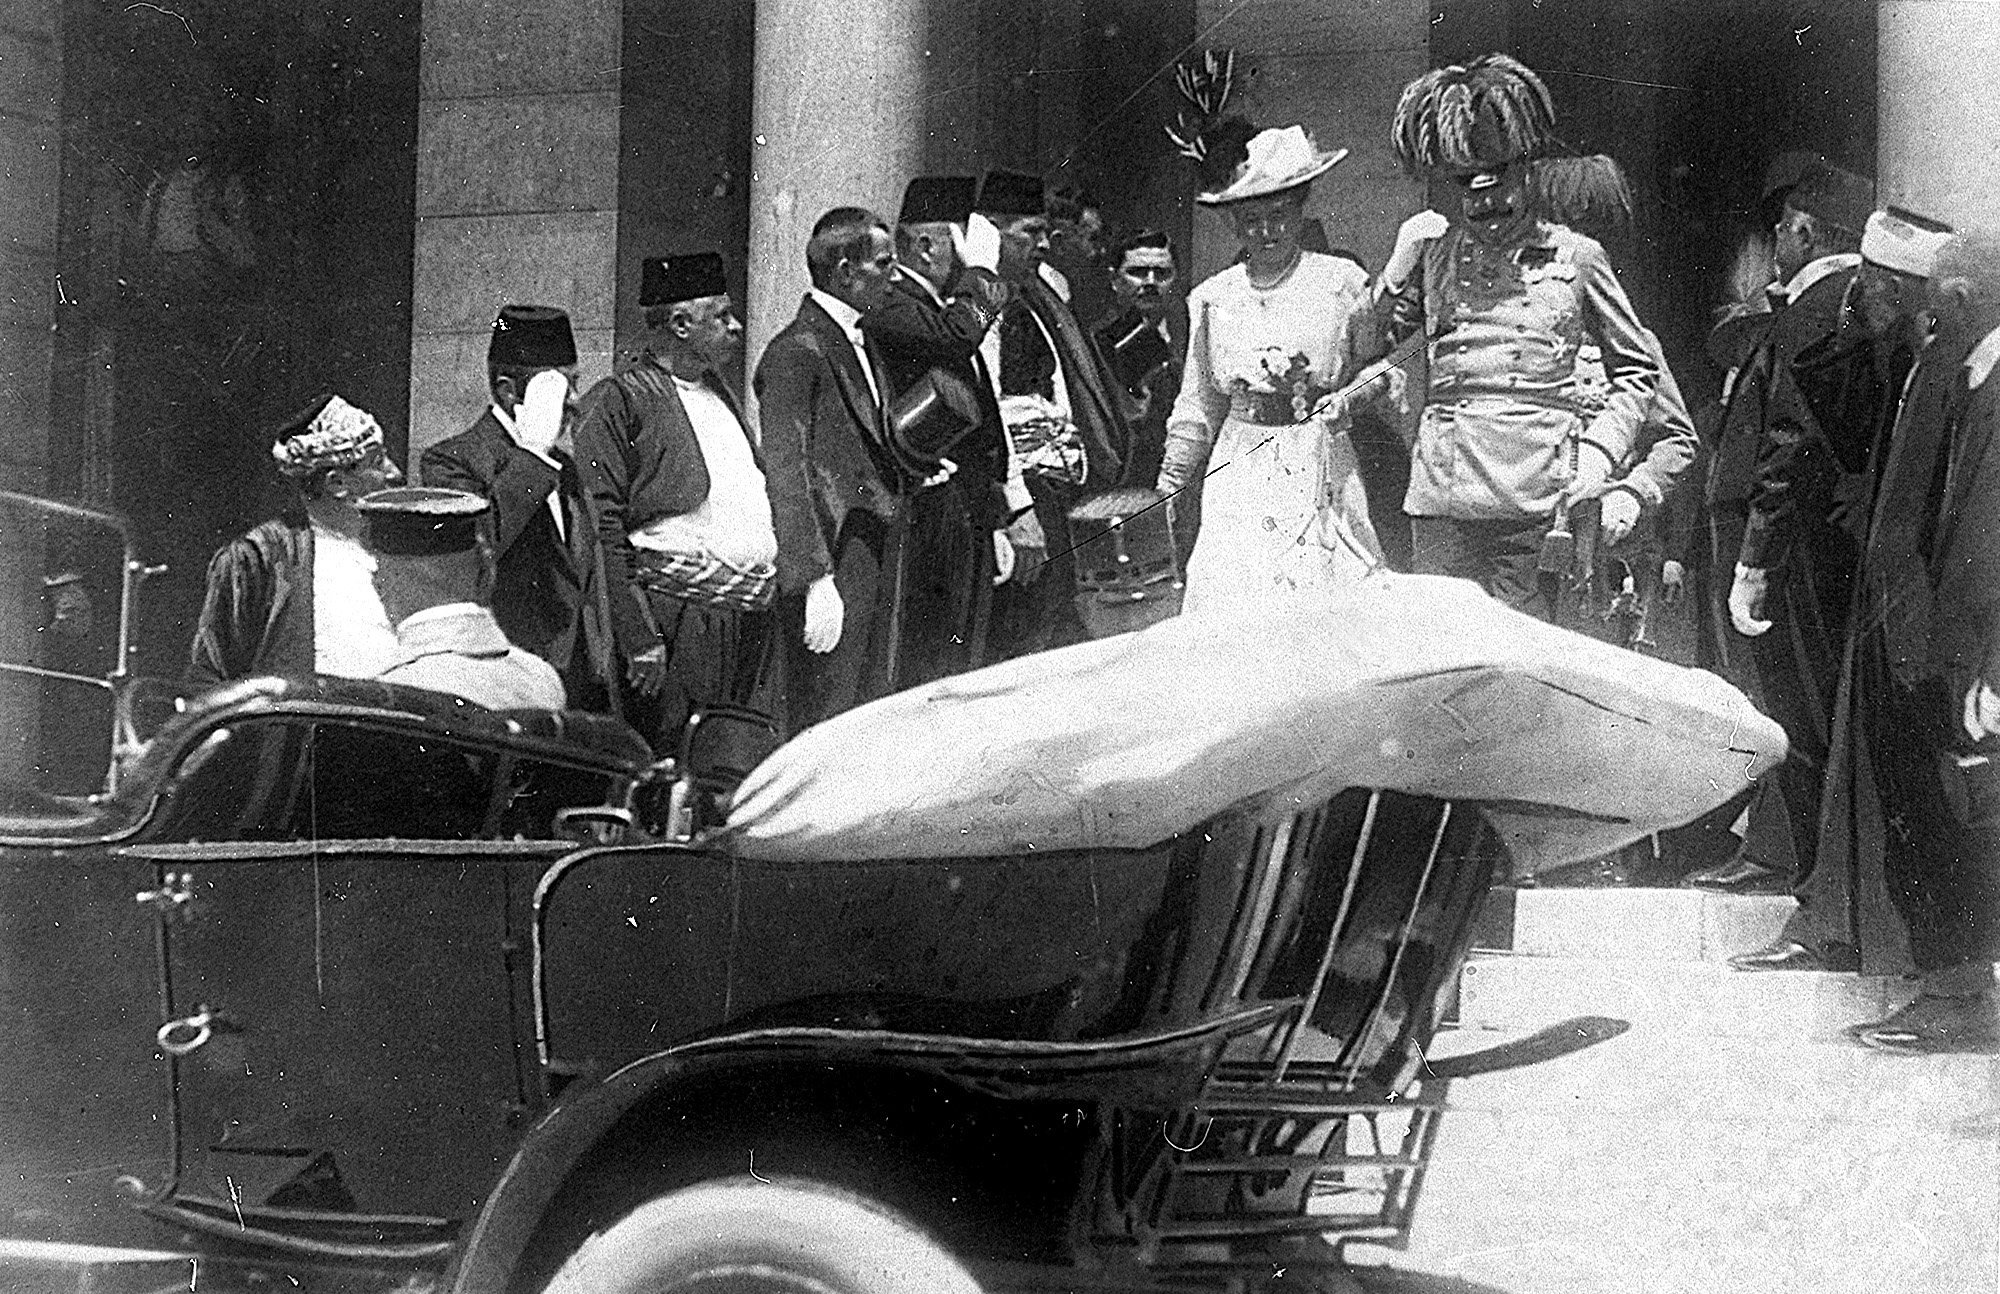 ONE OF ONE HUNDRED PHOTOS WORLD WAR ONE CENTENARY TIMELINE-In this June 28, 1914 file photo, the Archduke of Austria Franz Ferdinand, center right, and his wife Sophie, center left, walk to their a car in Sarajevo This photo was taken minutes before the assassination of the Archduke and his wife, an event which set off a chain reaction of events which would eventually lead to World War One (AP Photo, File)